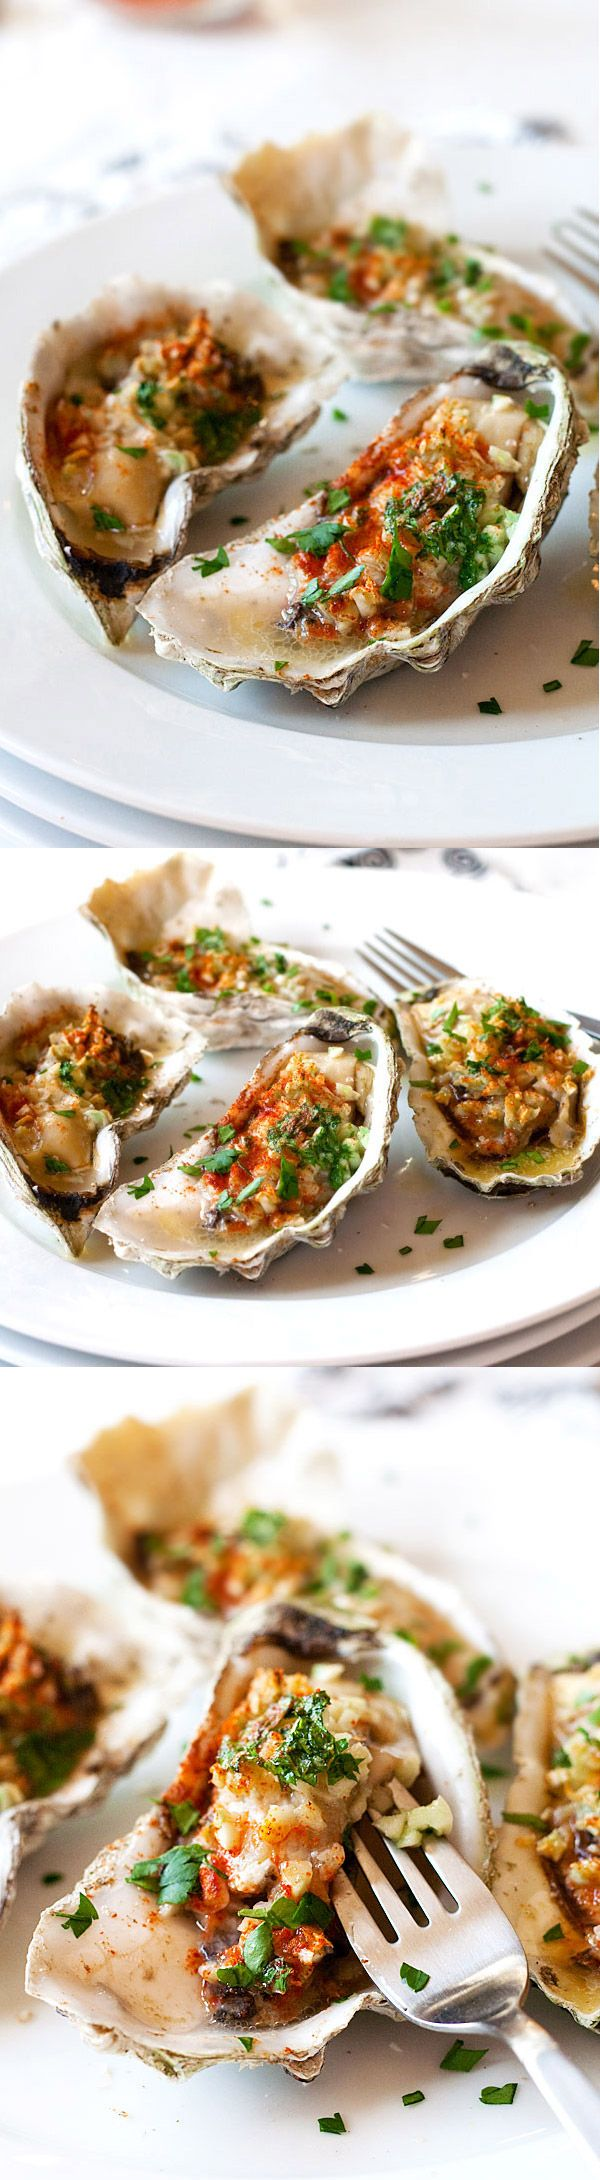 Grilled oysters (baked oysters) – oyster on the half shell with garlic, butter, parsley and paprika. Juicy, briny and crazy delicious.